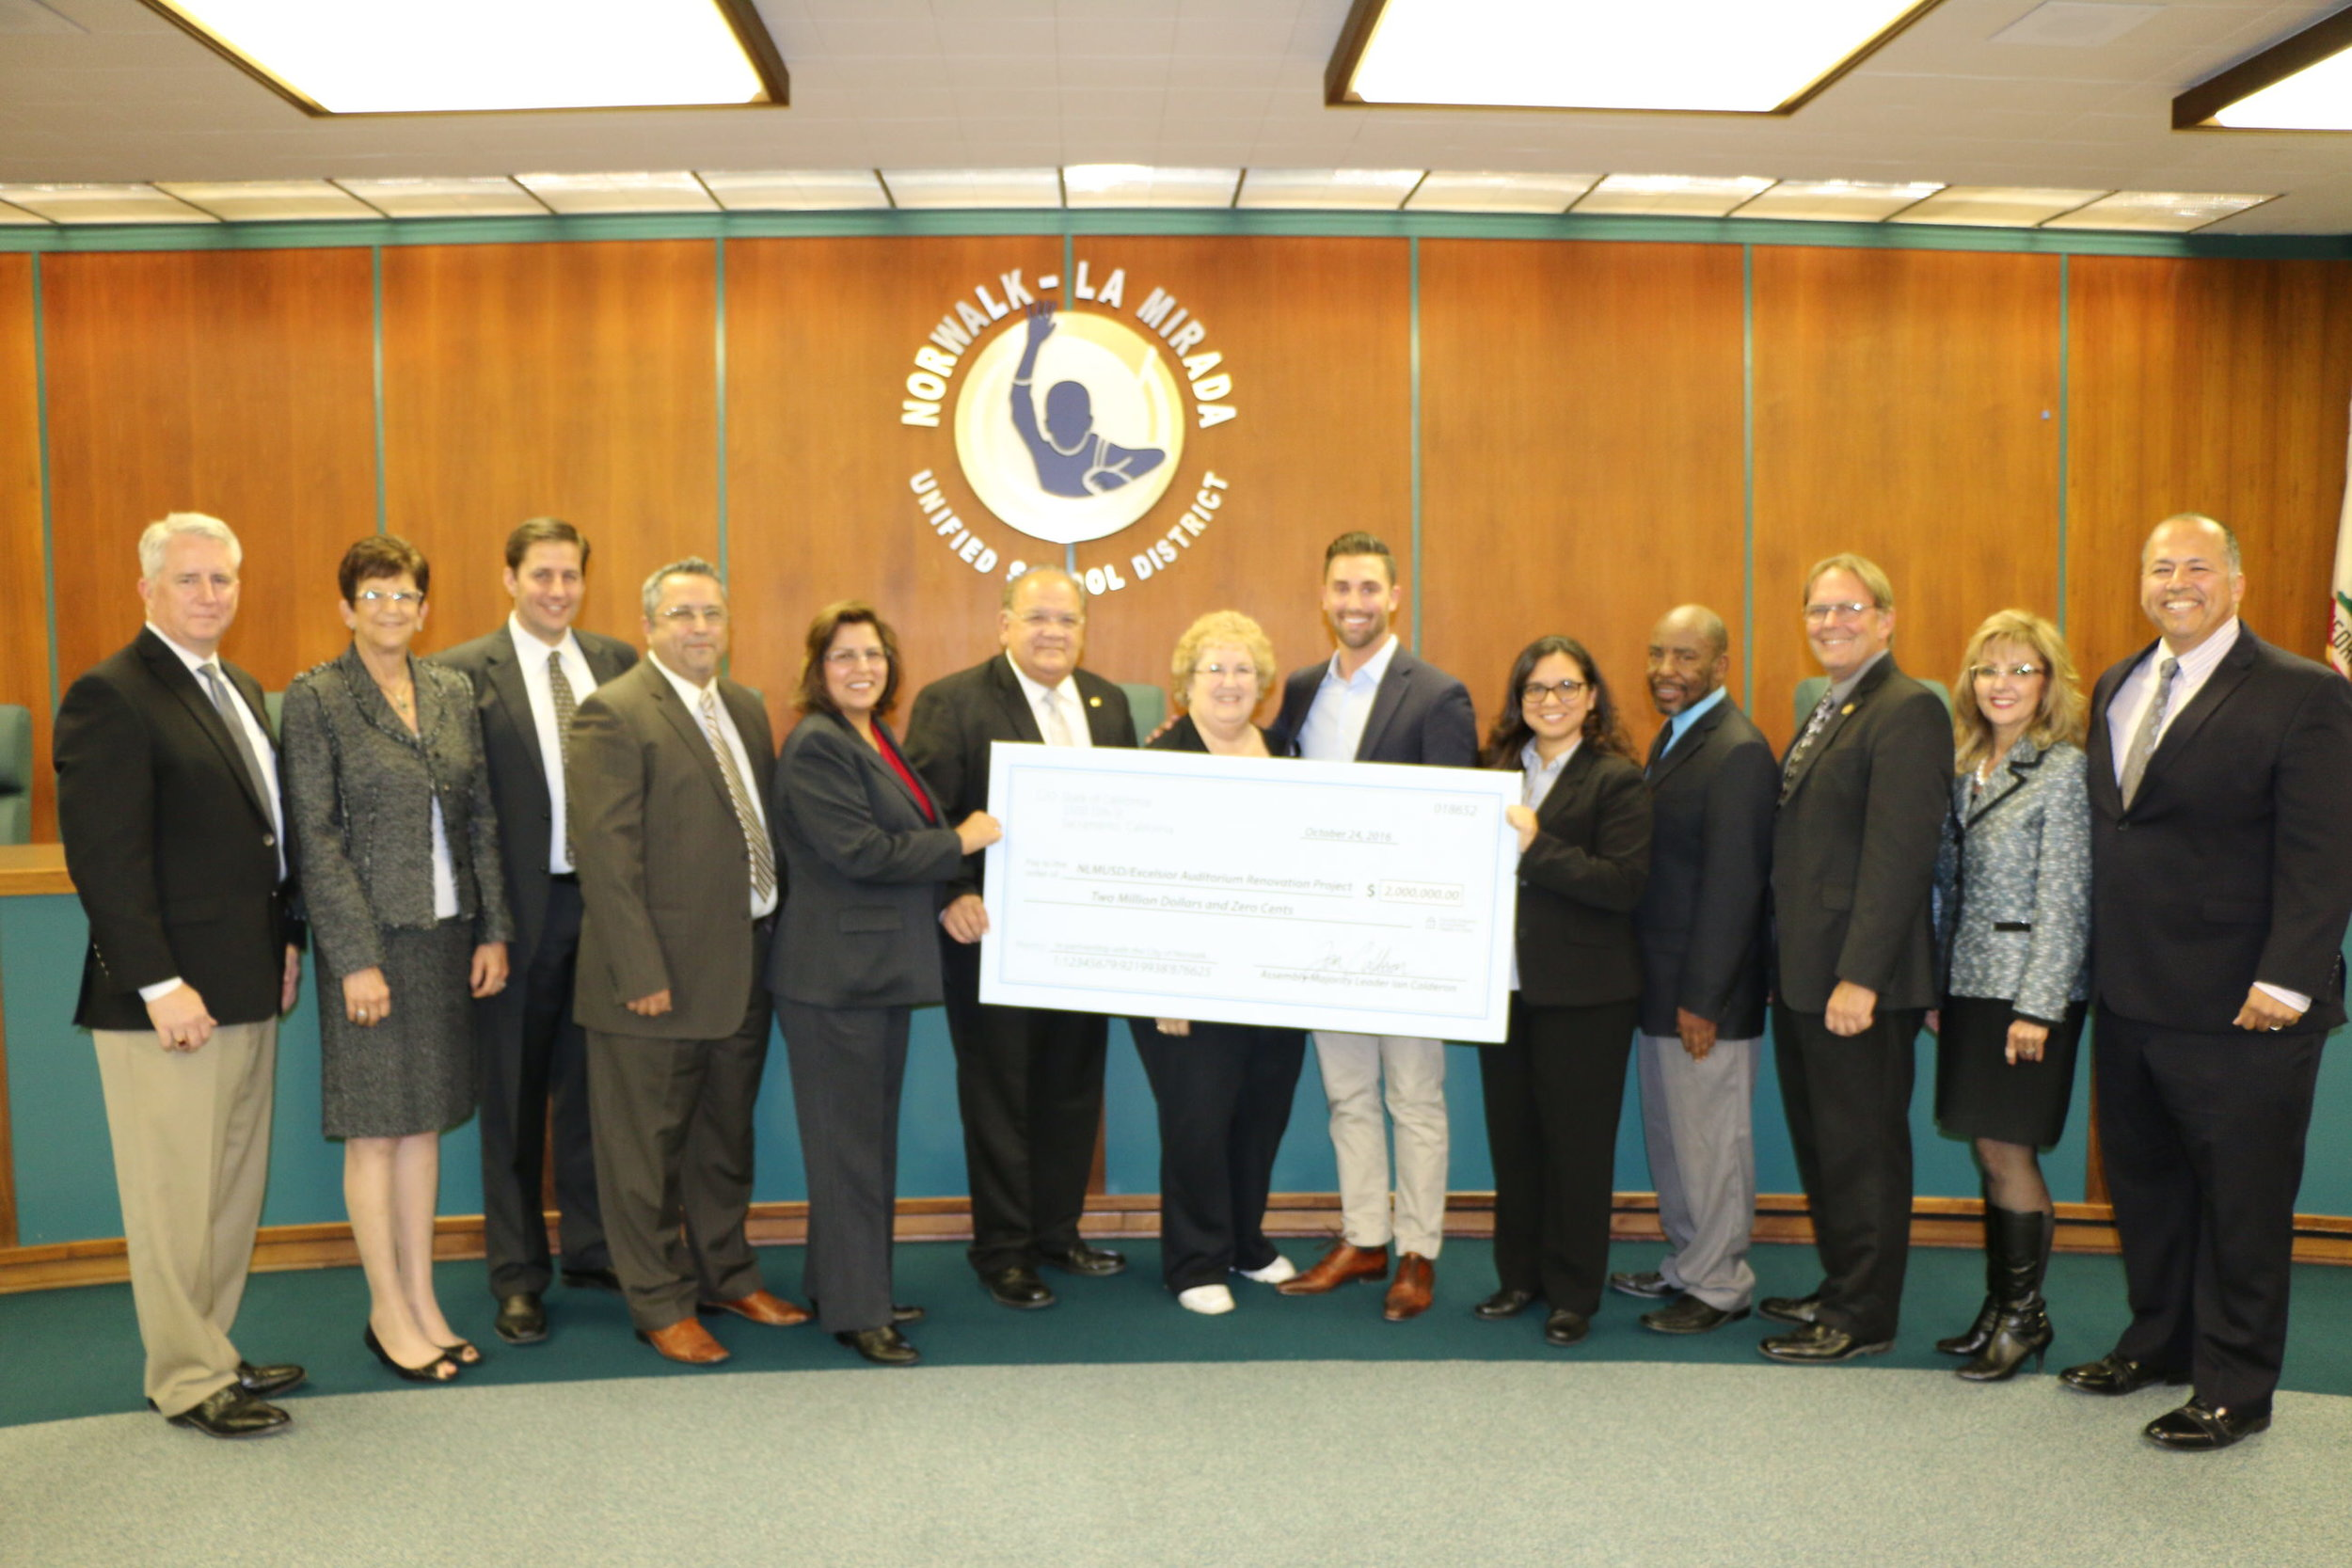 Presenting a grant check to the Norwalk-La Mirada Unified School District to restore the Excelsior High School Auditorium to a modern, accessible joint-use facility for the entire community to enjoy.